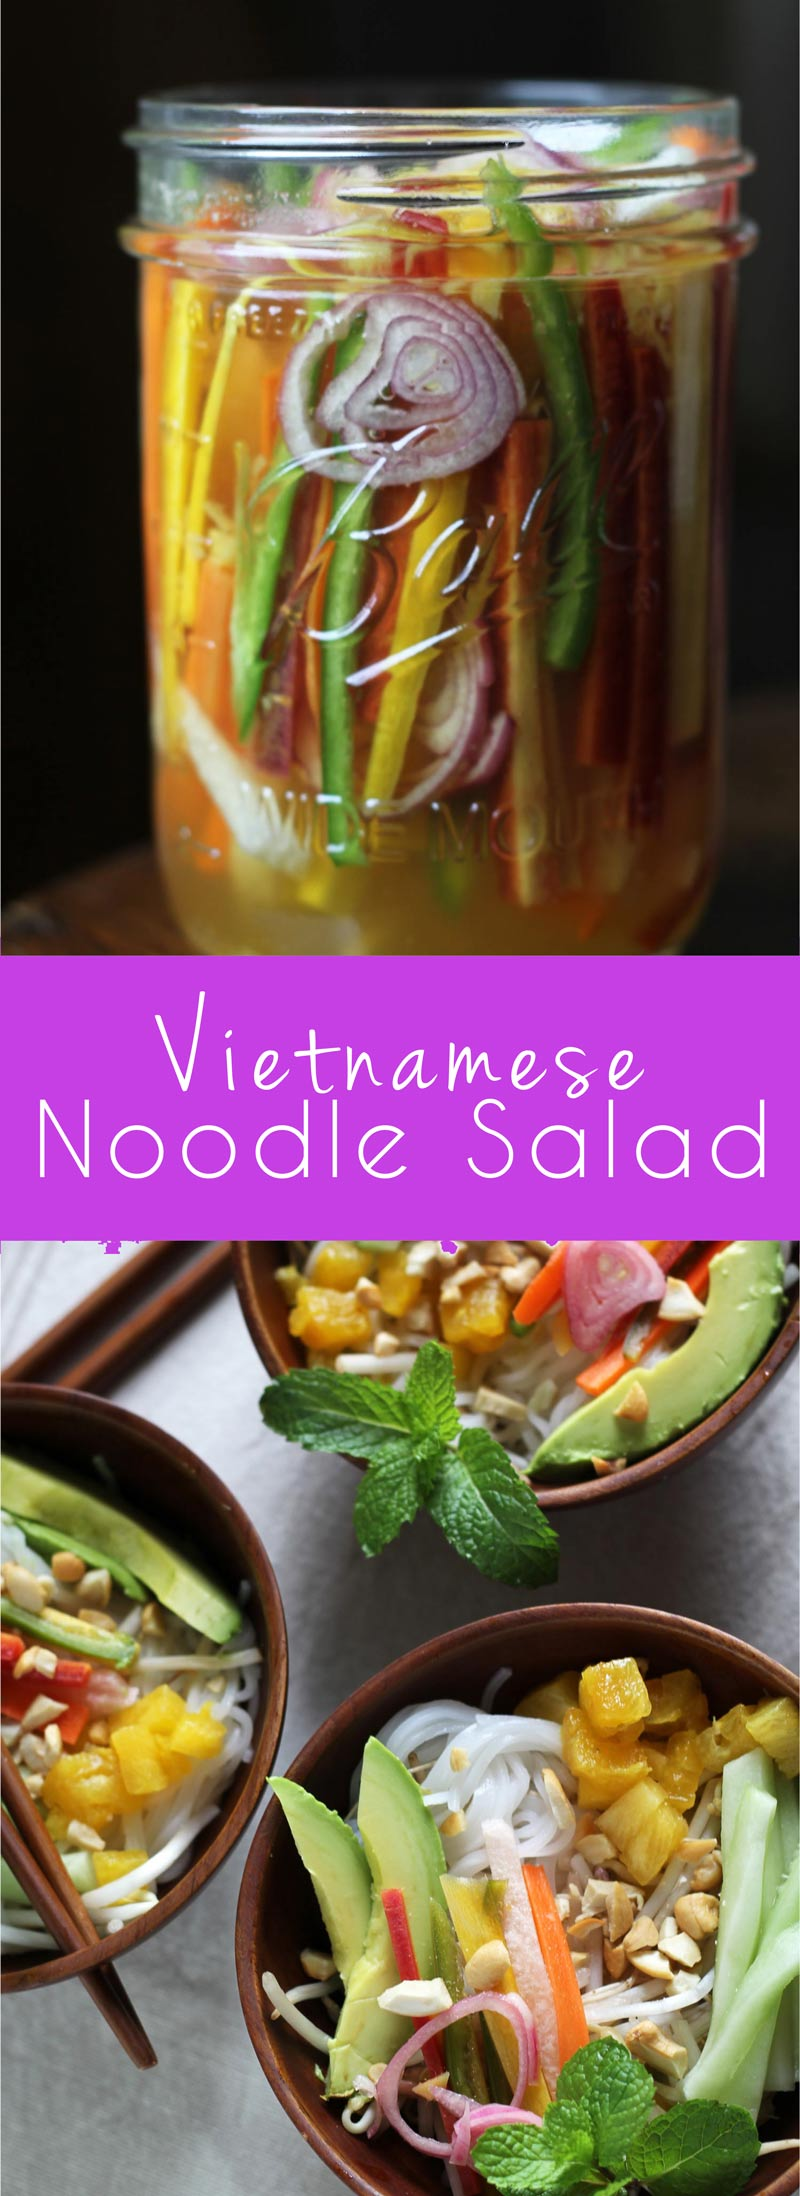 Vietnamese Noodle Salads, aka Bun, with cold rice noodles, crunchy veggies, pickles, aromatic herbs, cashews, and a spicy sauce